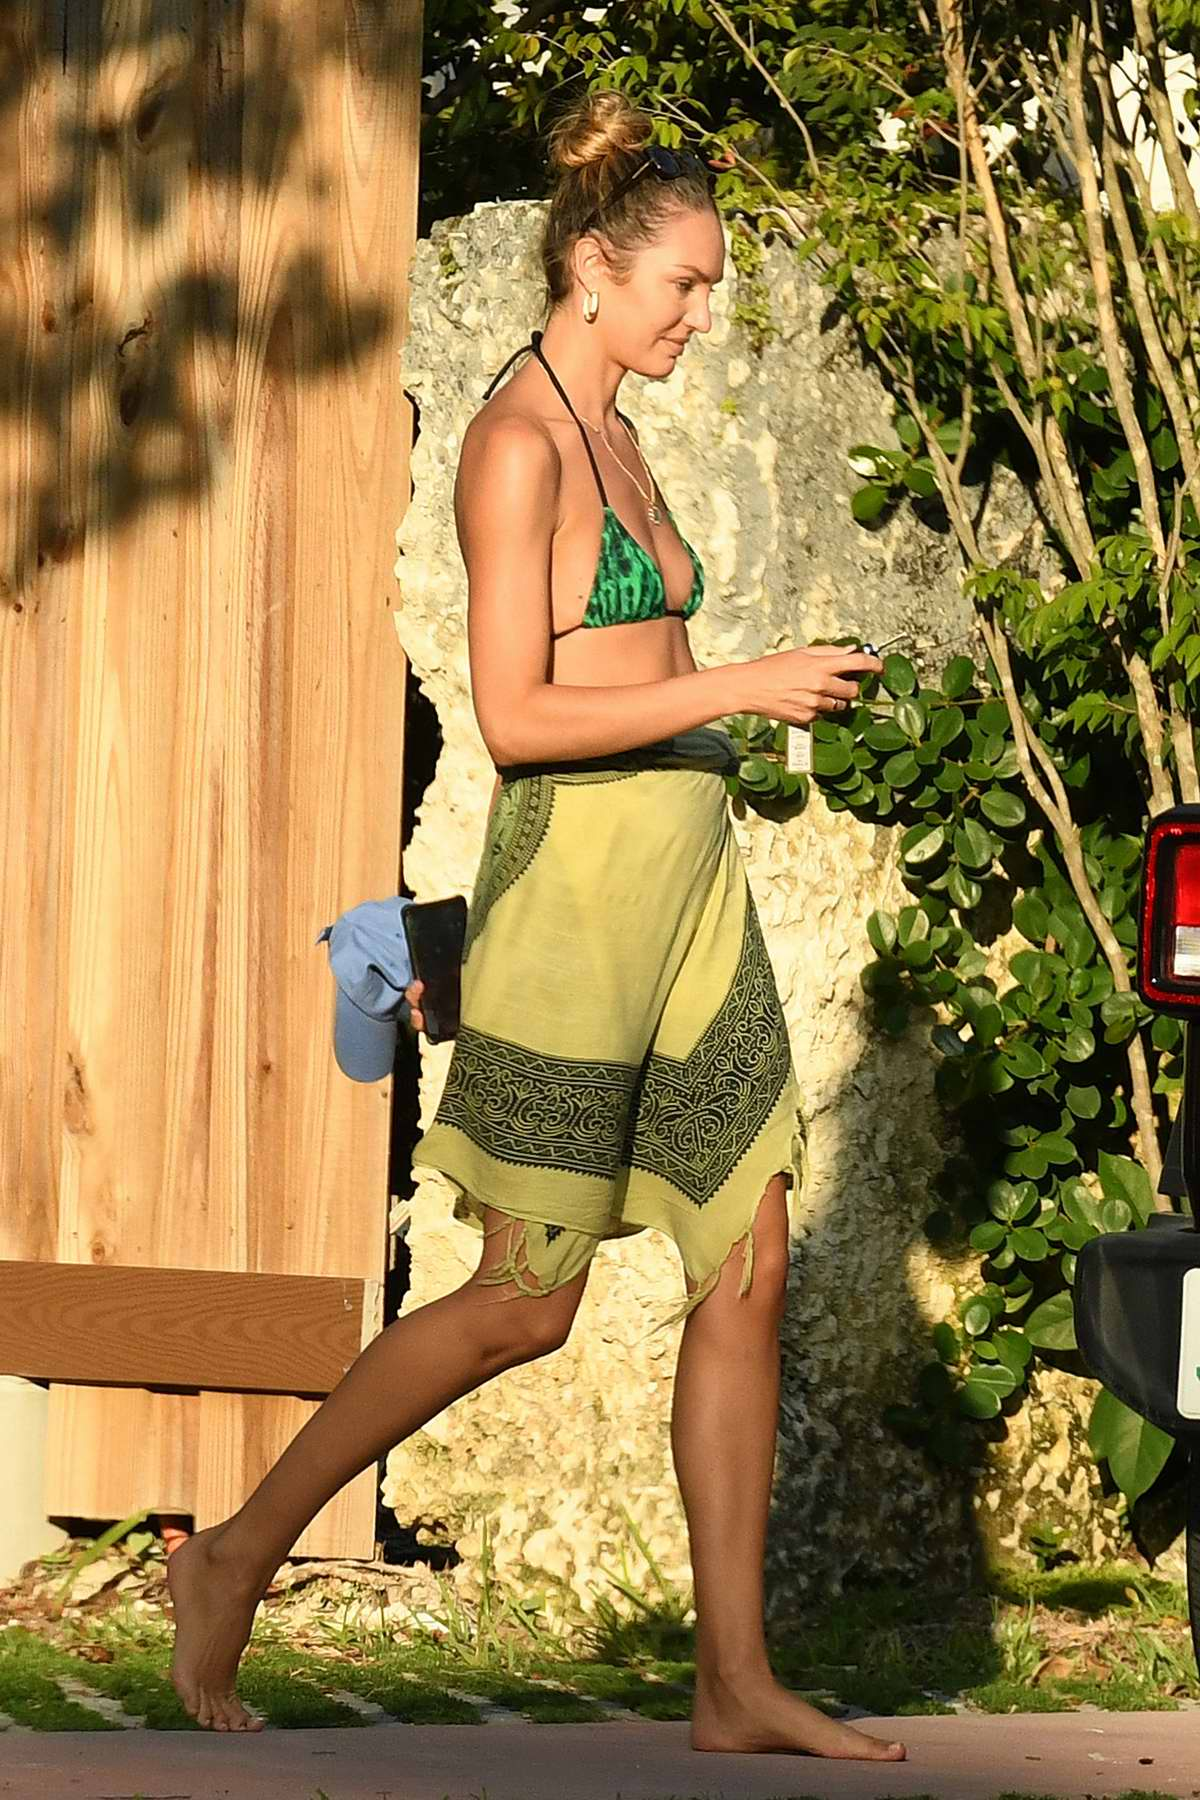 Candice Swanepoel wears a green bikini top with a sarong while out around her neighborhood in Miami Beach, Florida